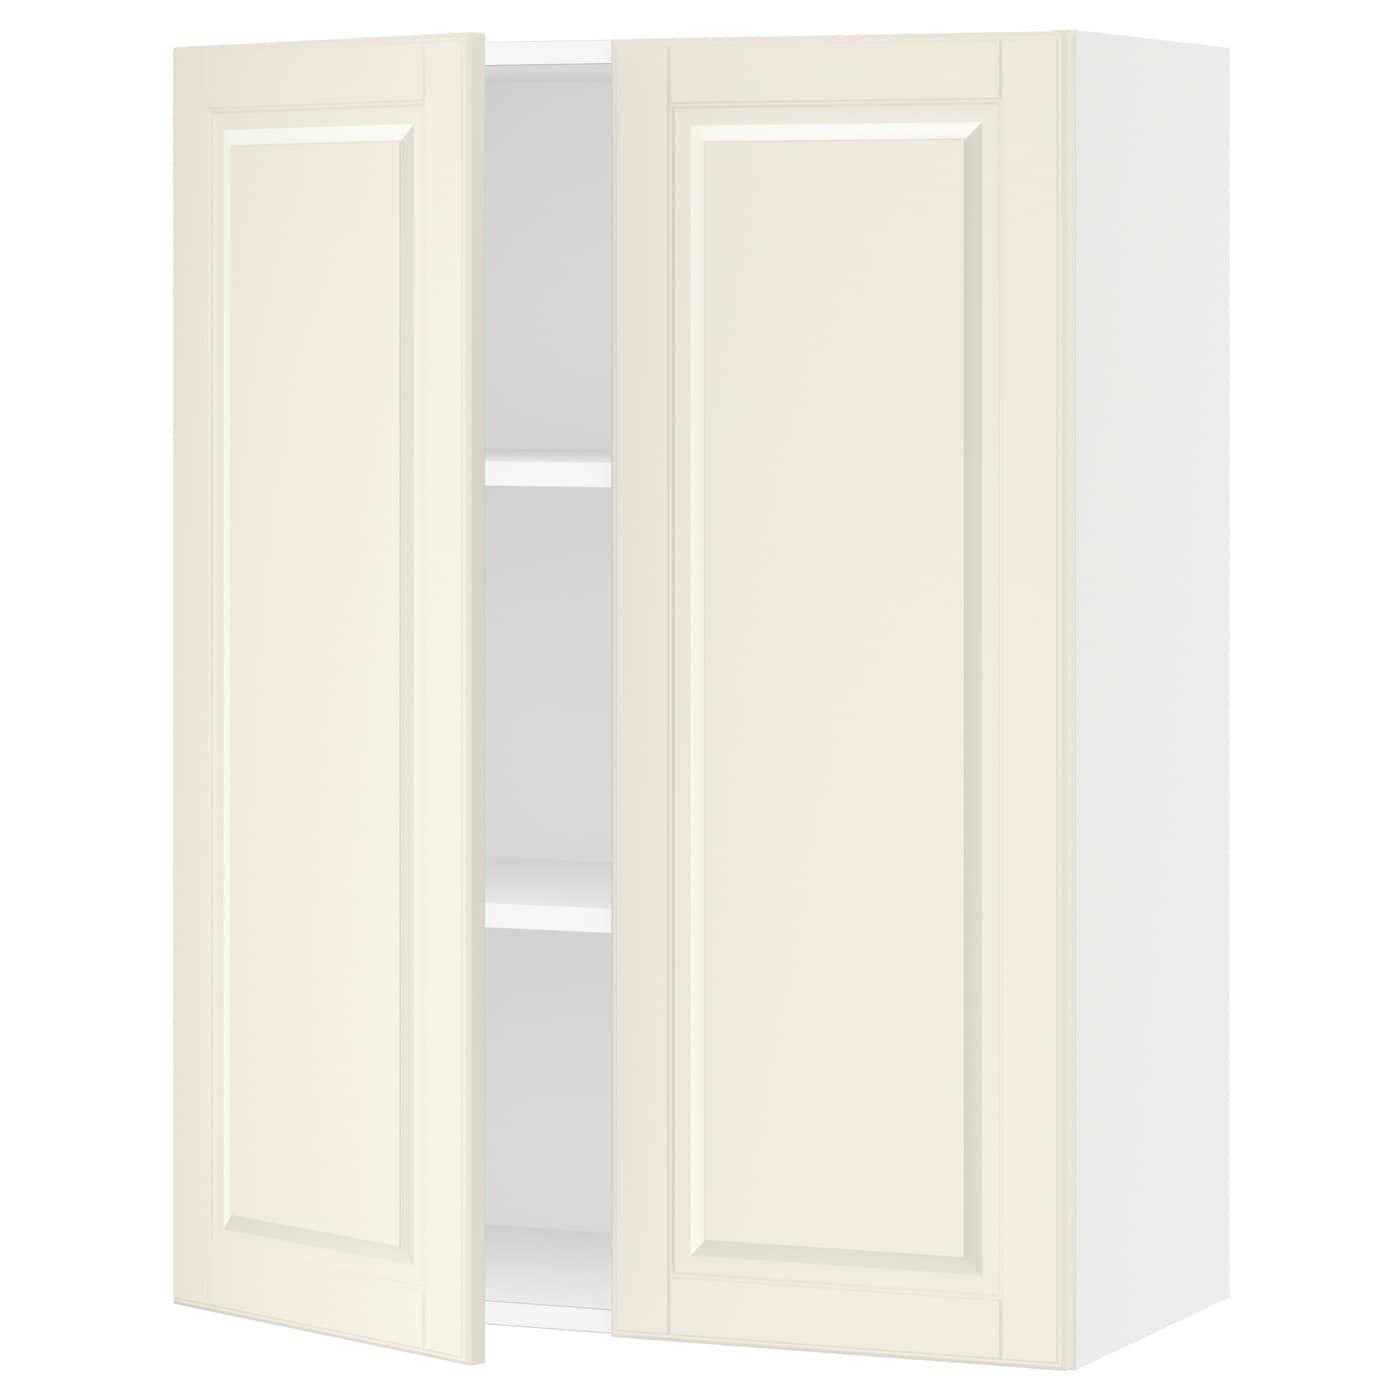 IKEA - SEKTION white Wall cabinet with 2 doors Frame